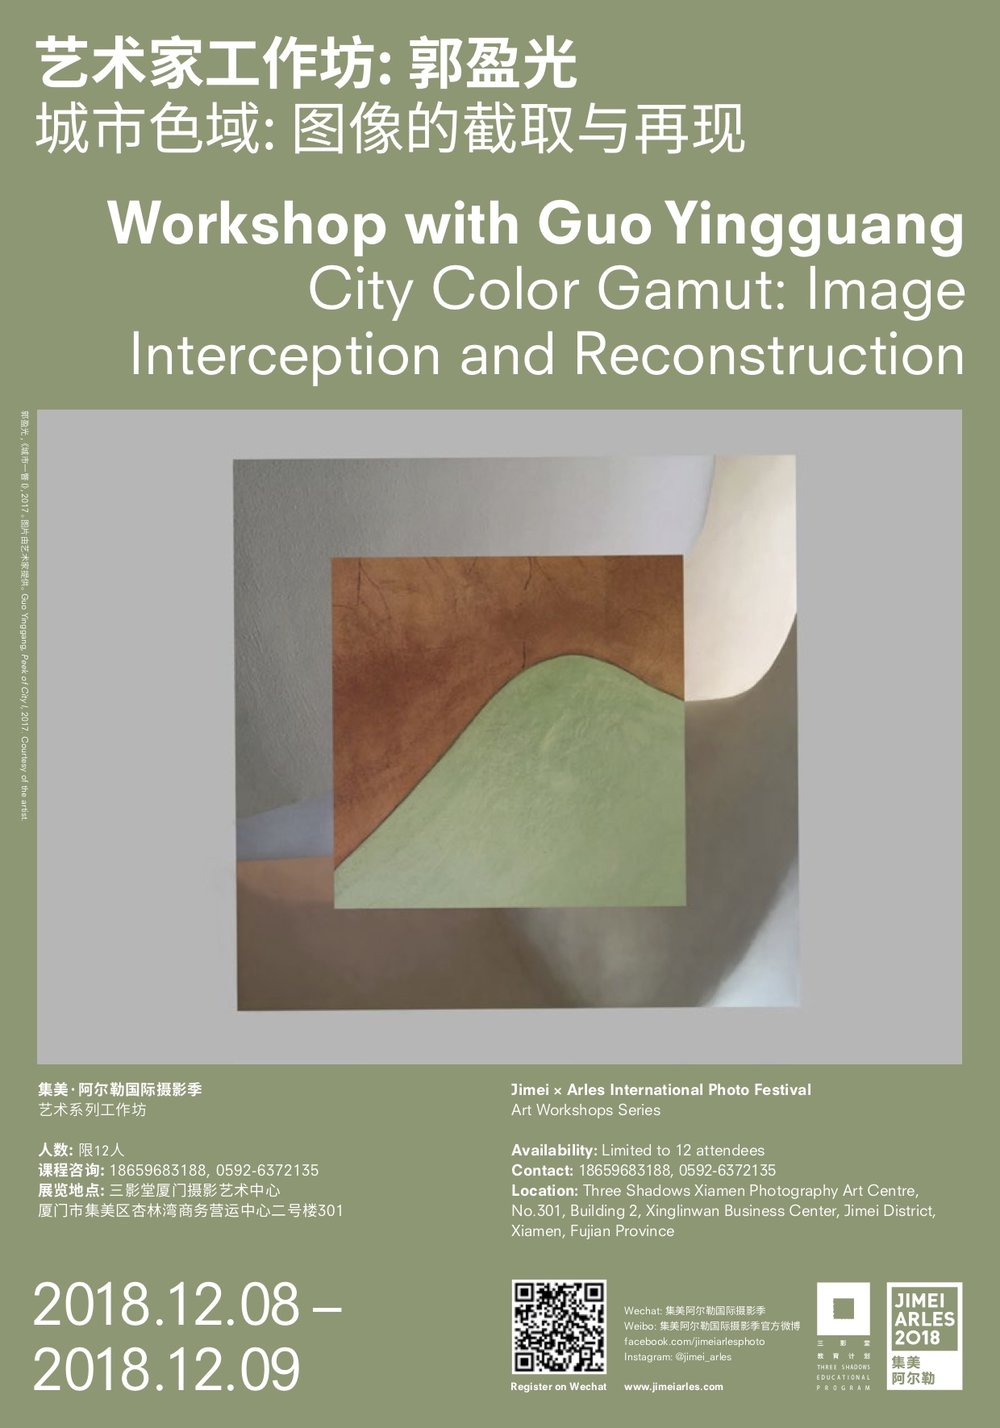 JIMEIARLES_Workshop Poster_Digital_Guo_Yingguang.jpg